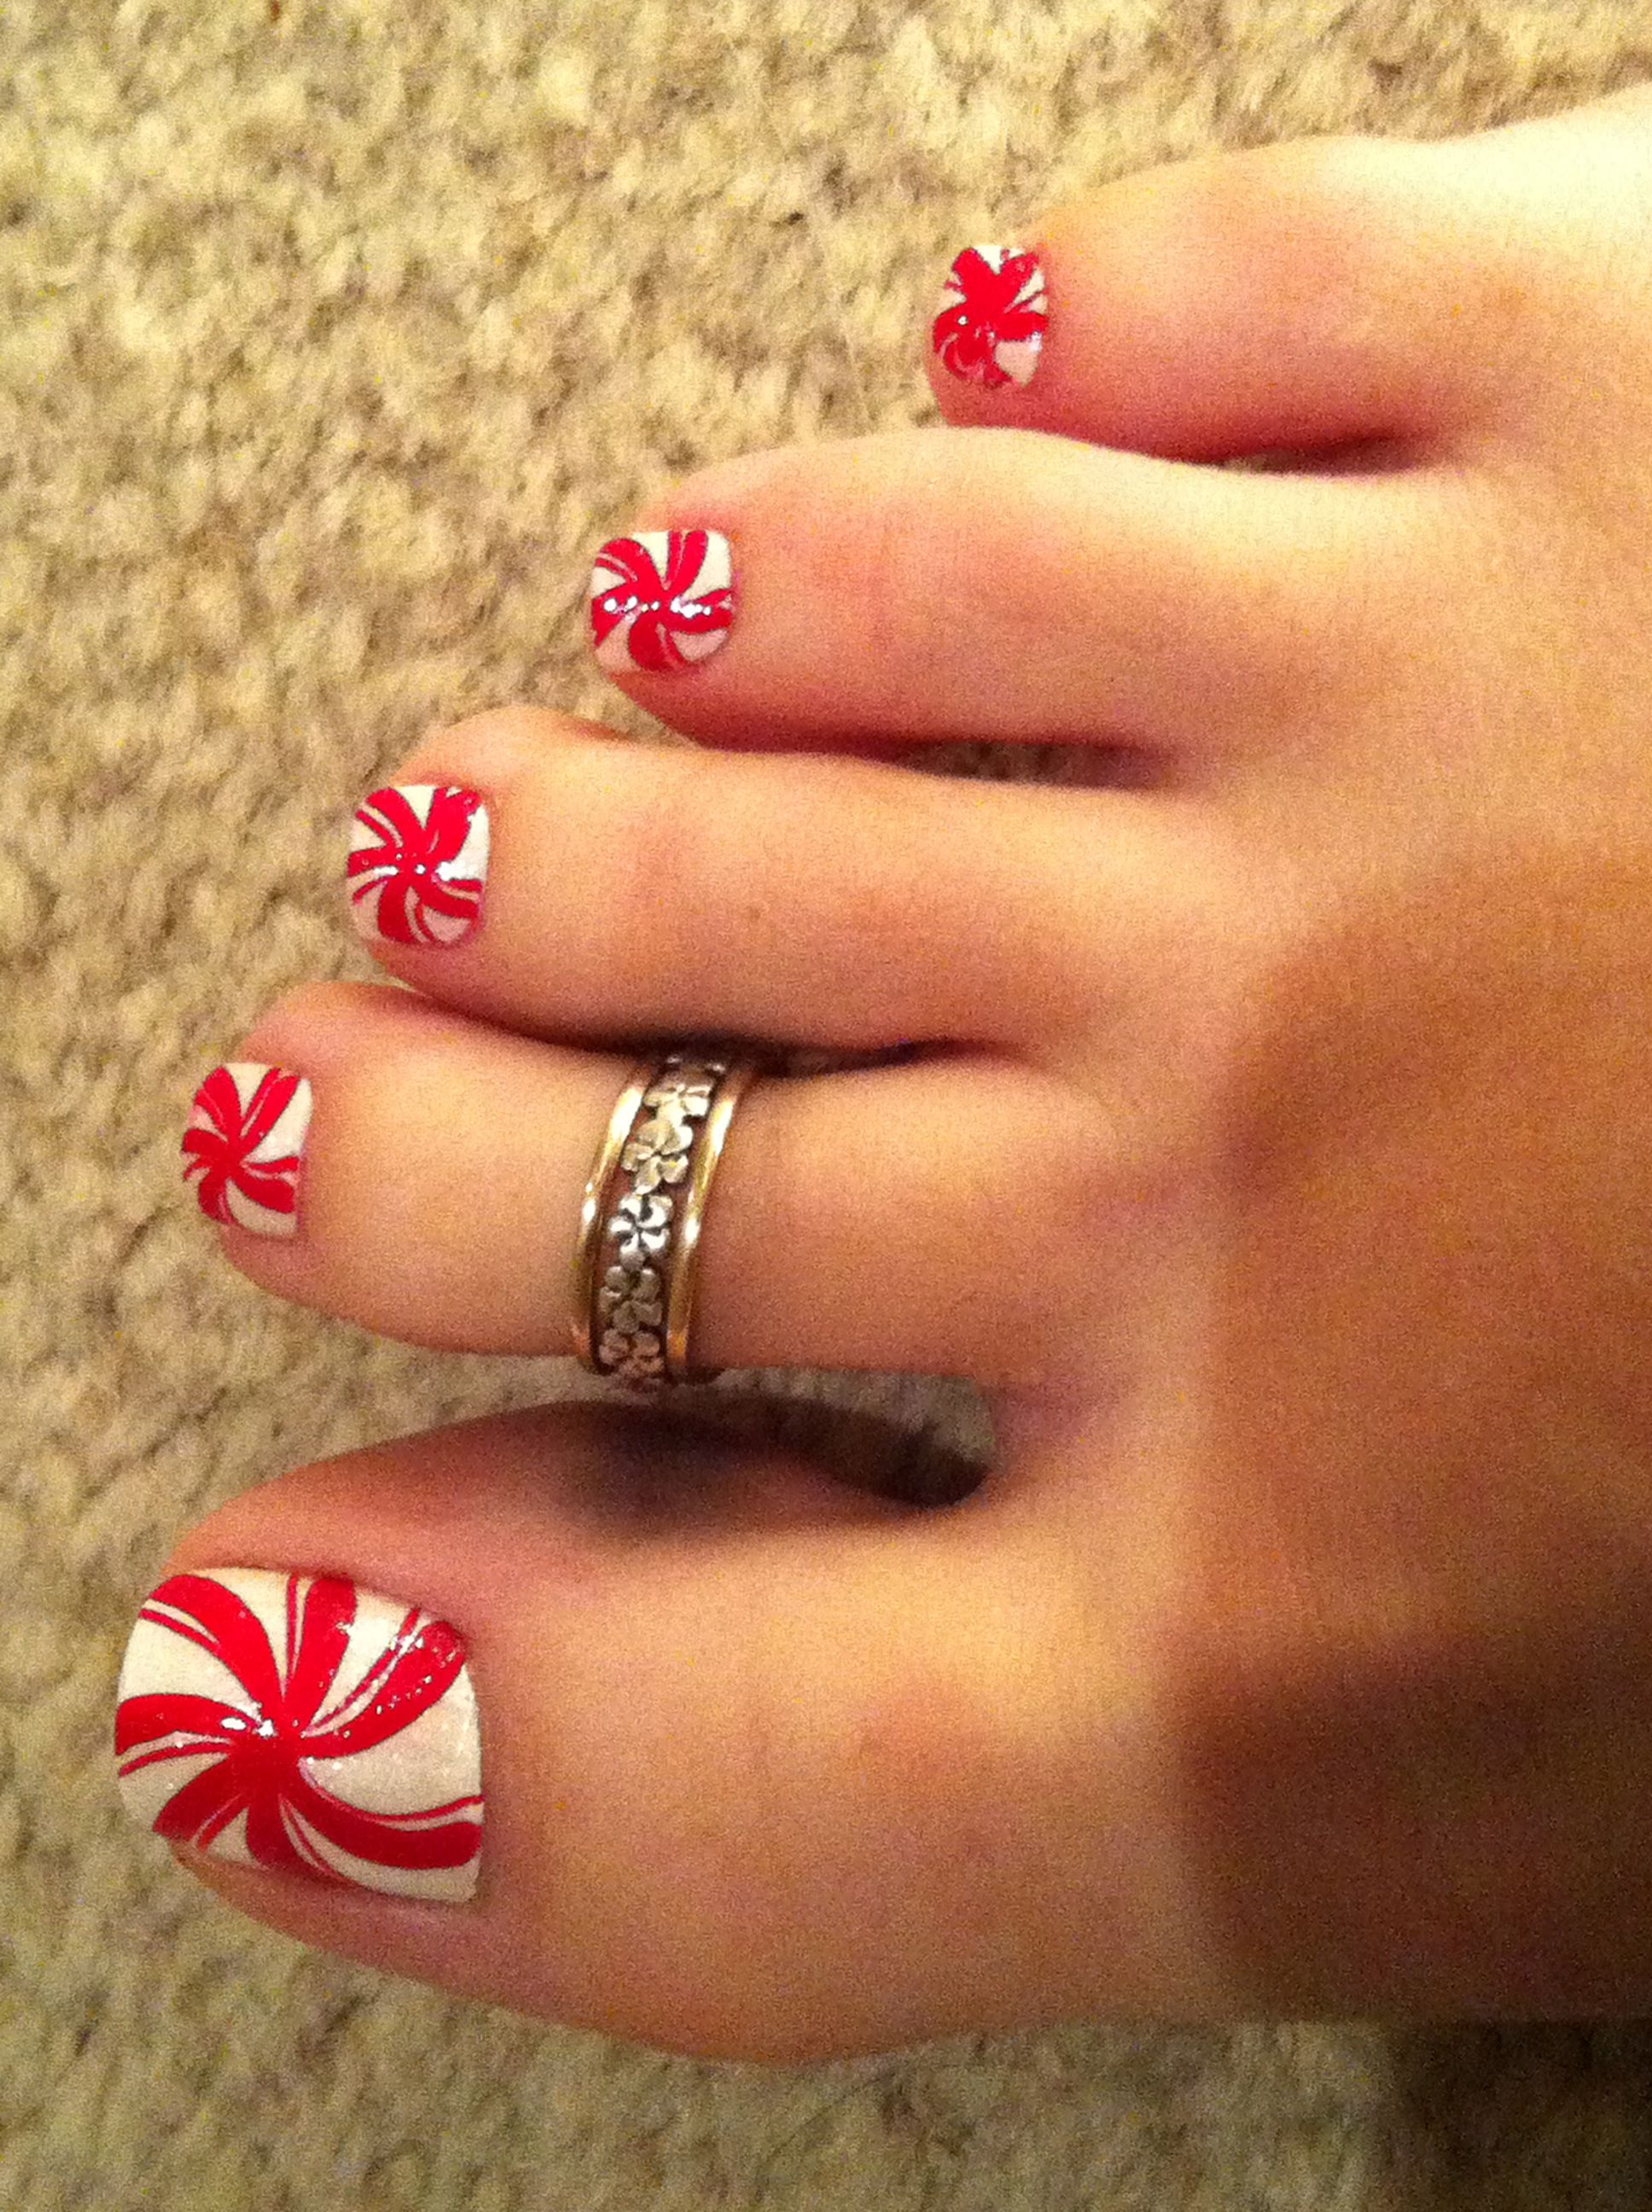 Top 10 Red Nails Designs Top Inspired Painted Toe Nails Christmas Toes Toe Nail Art